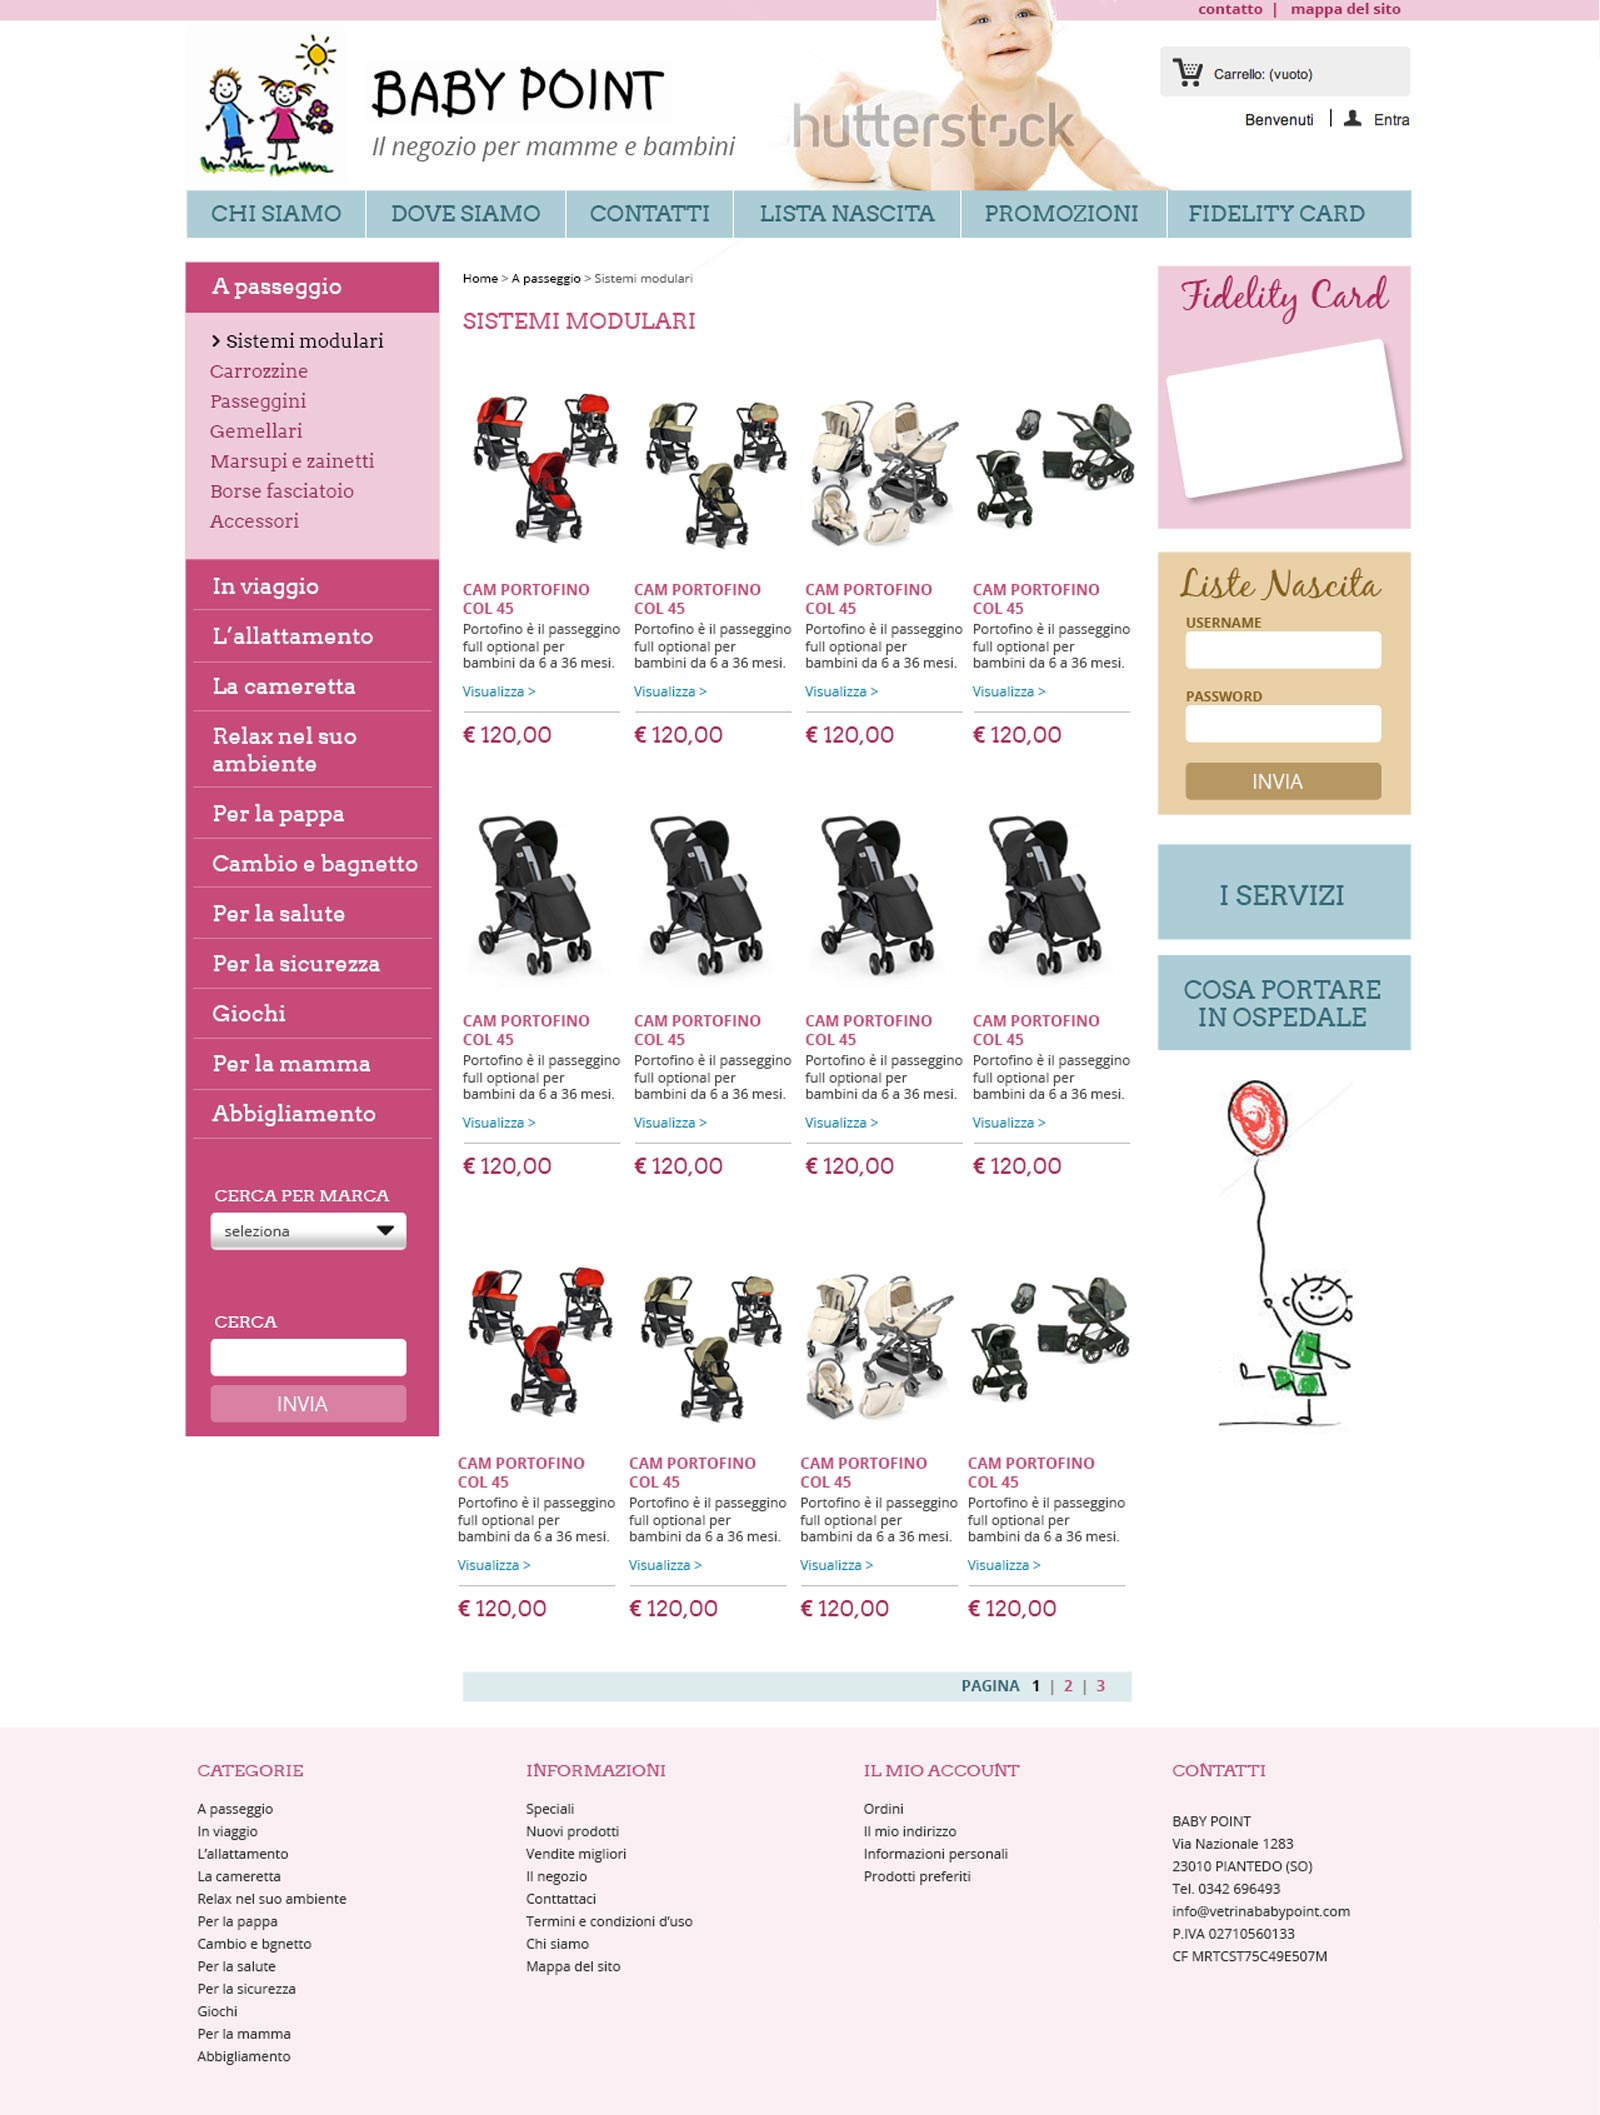 pic-babypoint-website